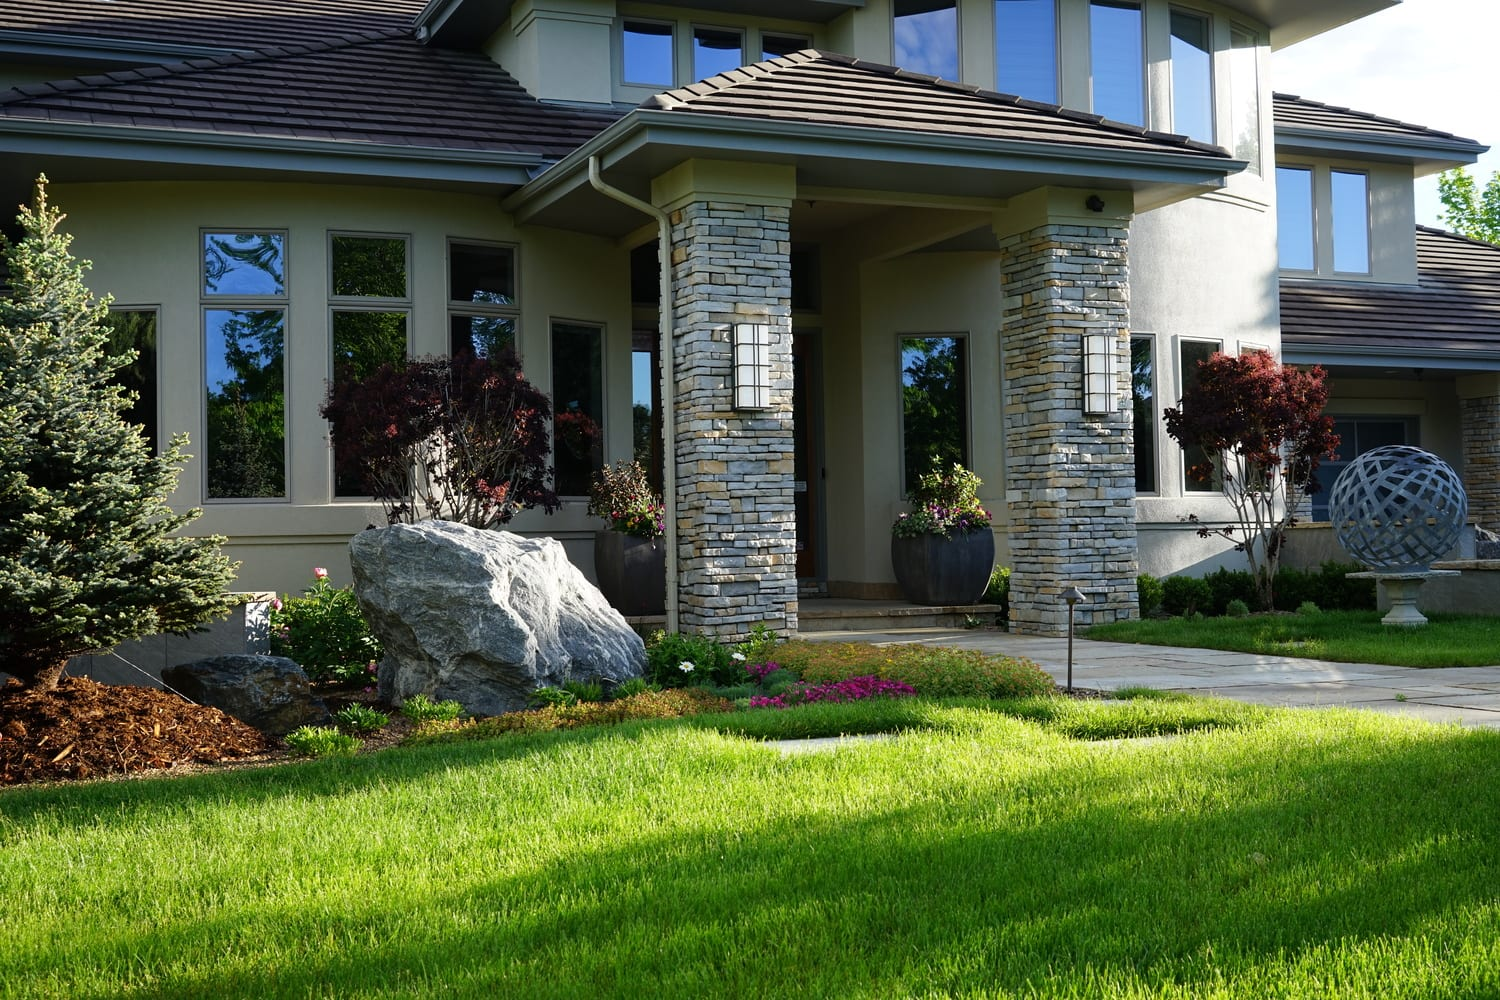 Landscaping Professionals Needed for Top Boulder, CO Company